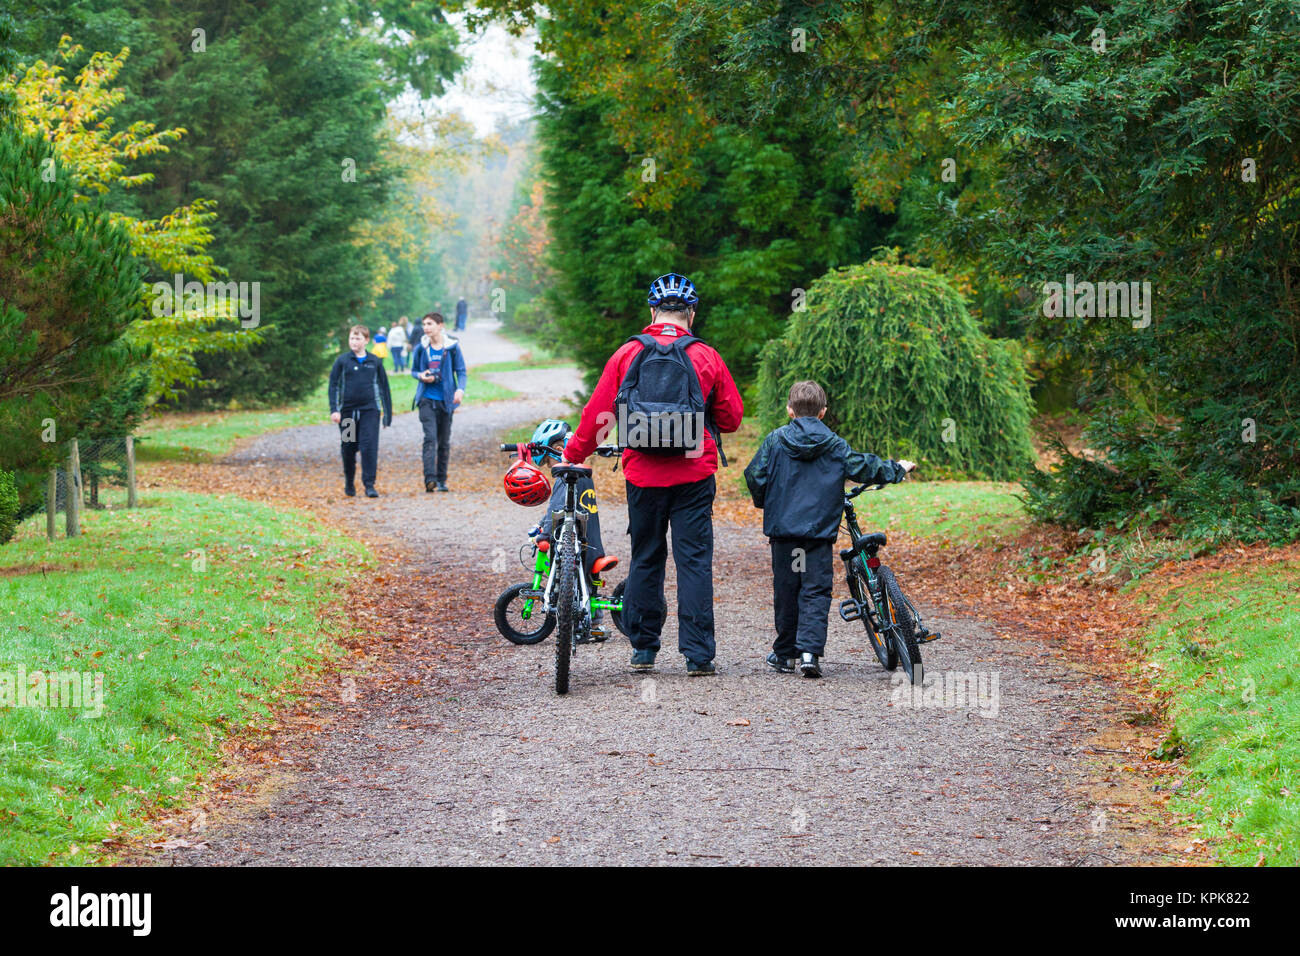 Bedgebury National Pinetum at Bedgebury, Kent. A family with bikes walk along a trail path - Stock Image